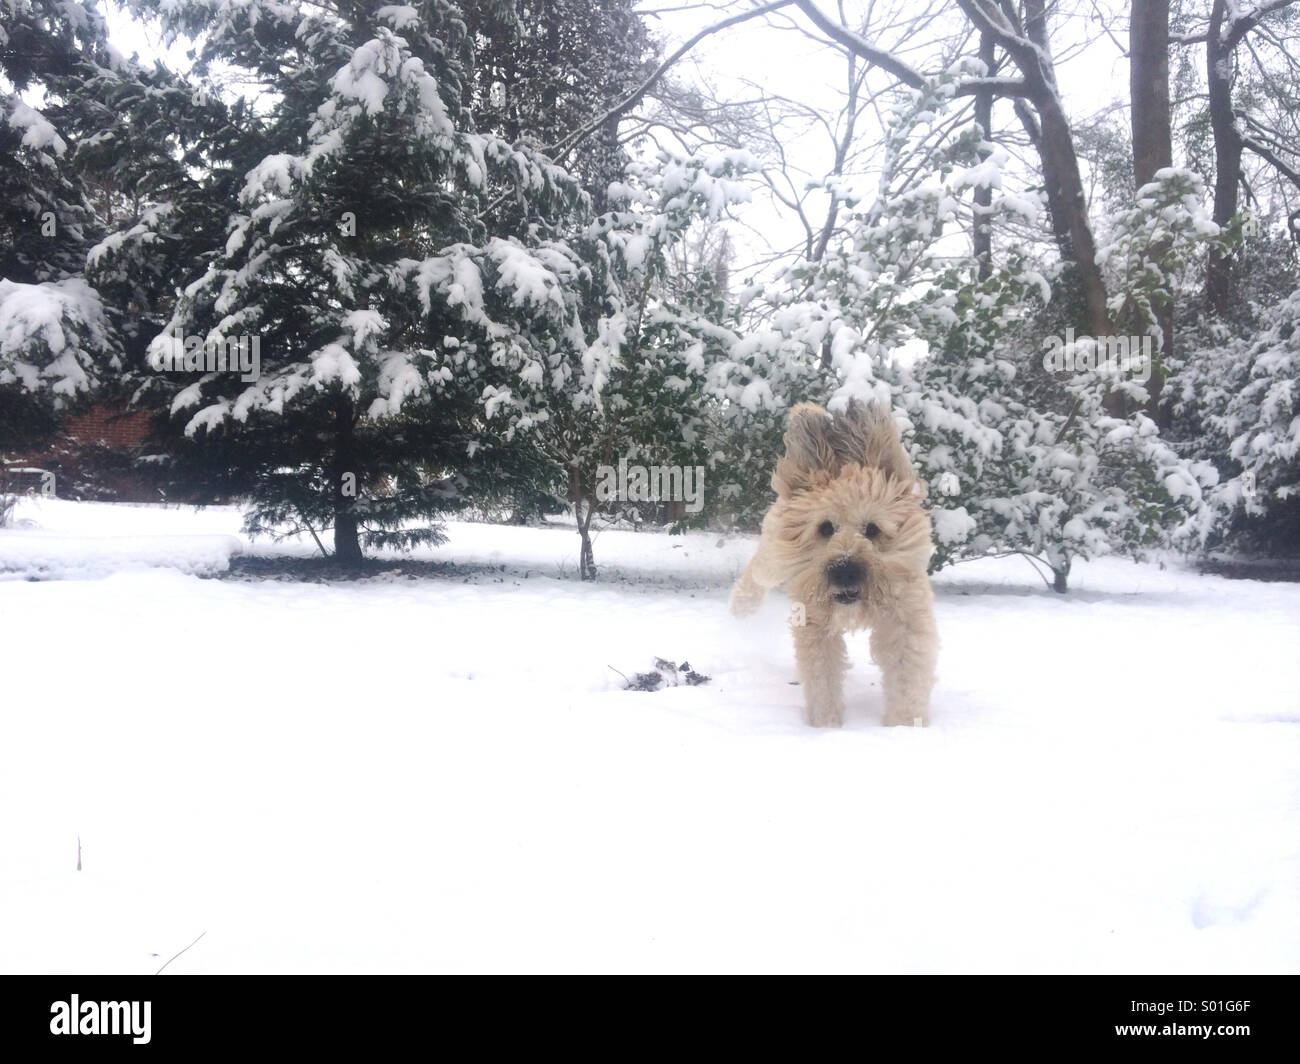 Jumping around in the snow, ears flapping. - Stock Image